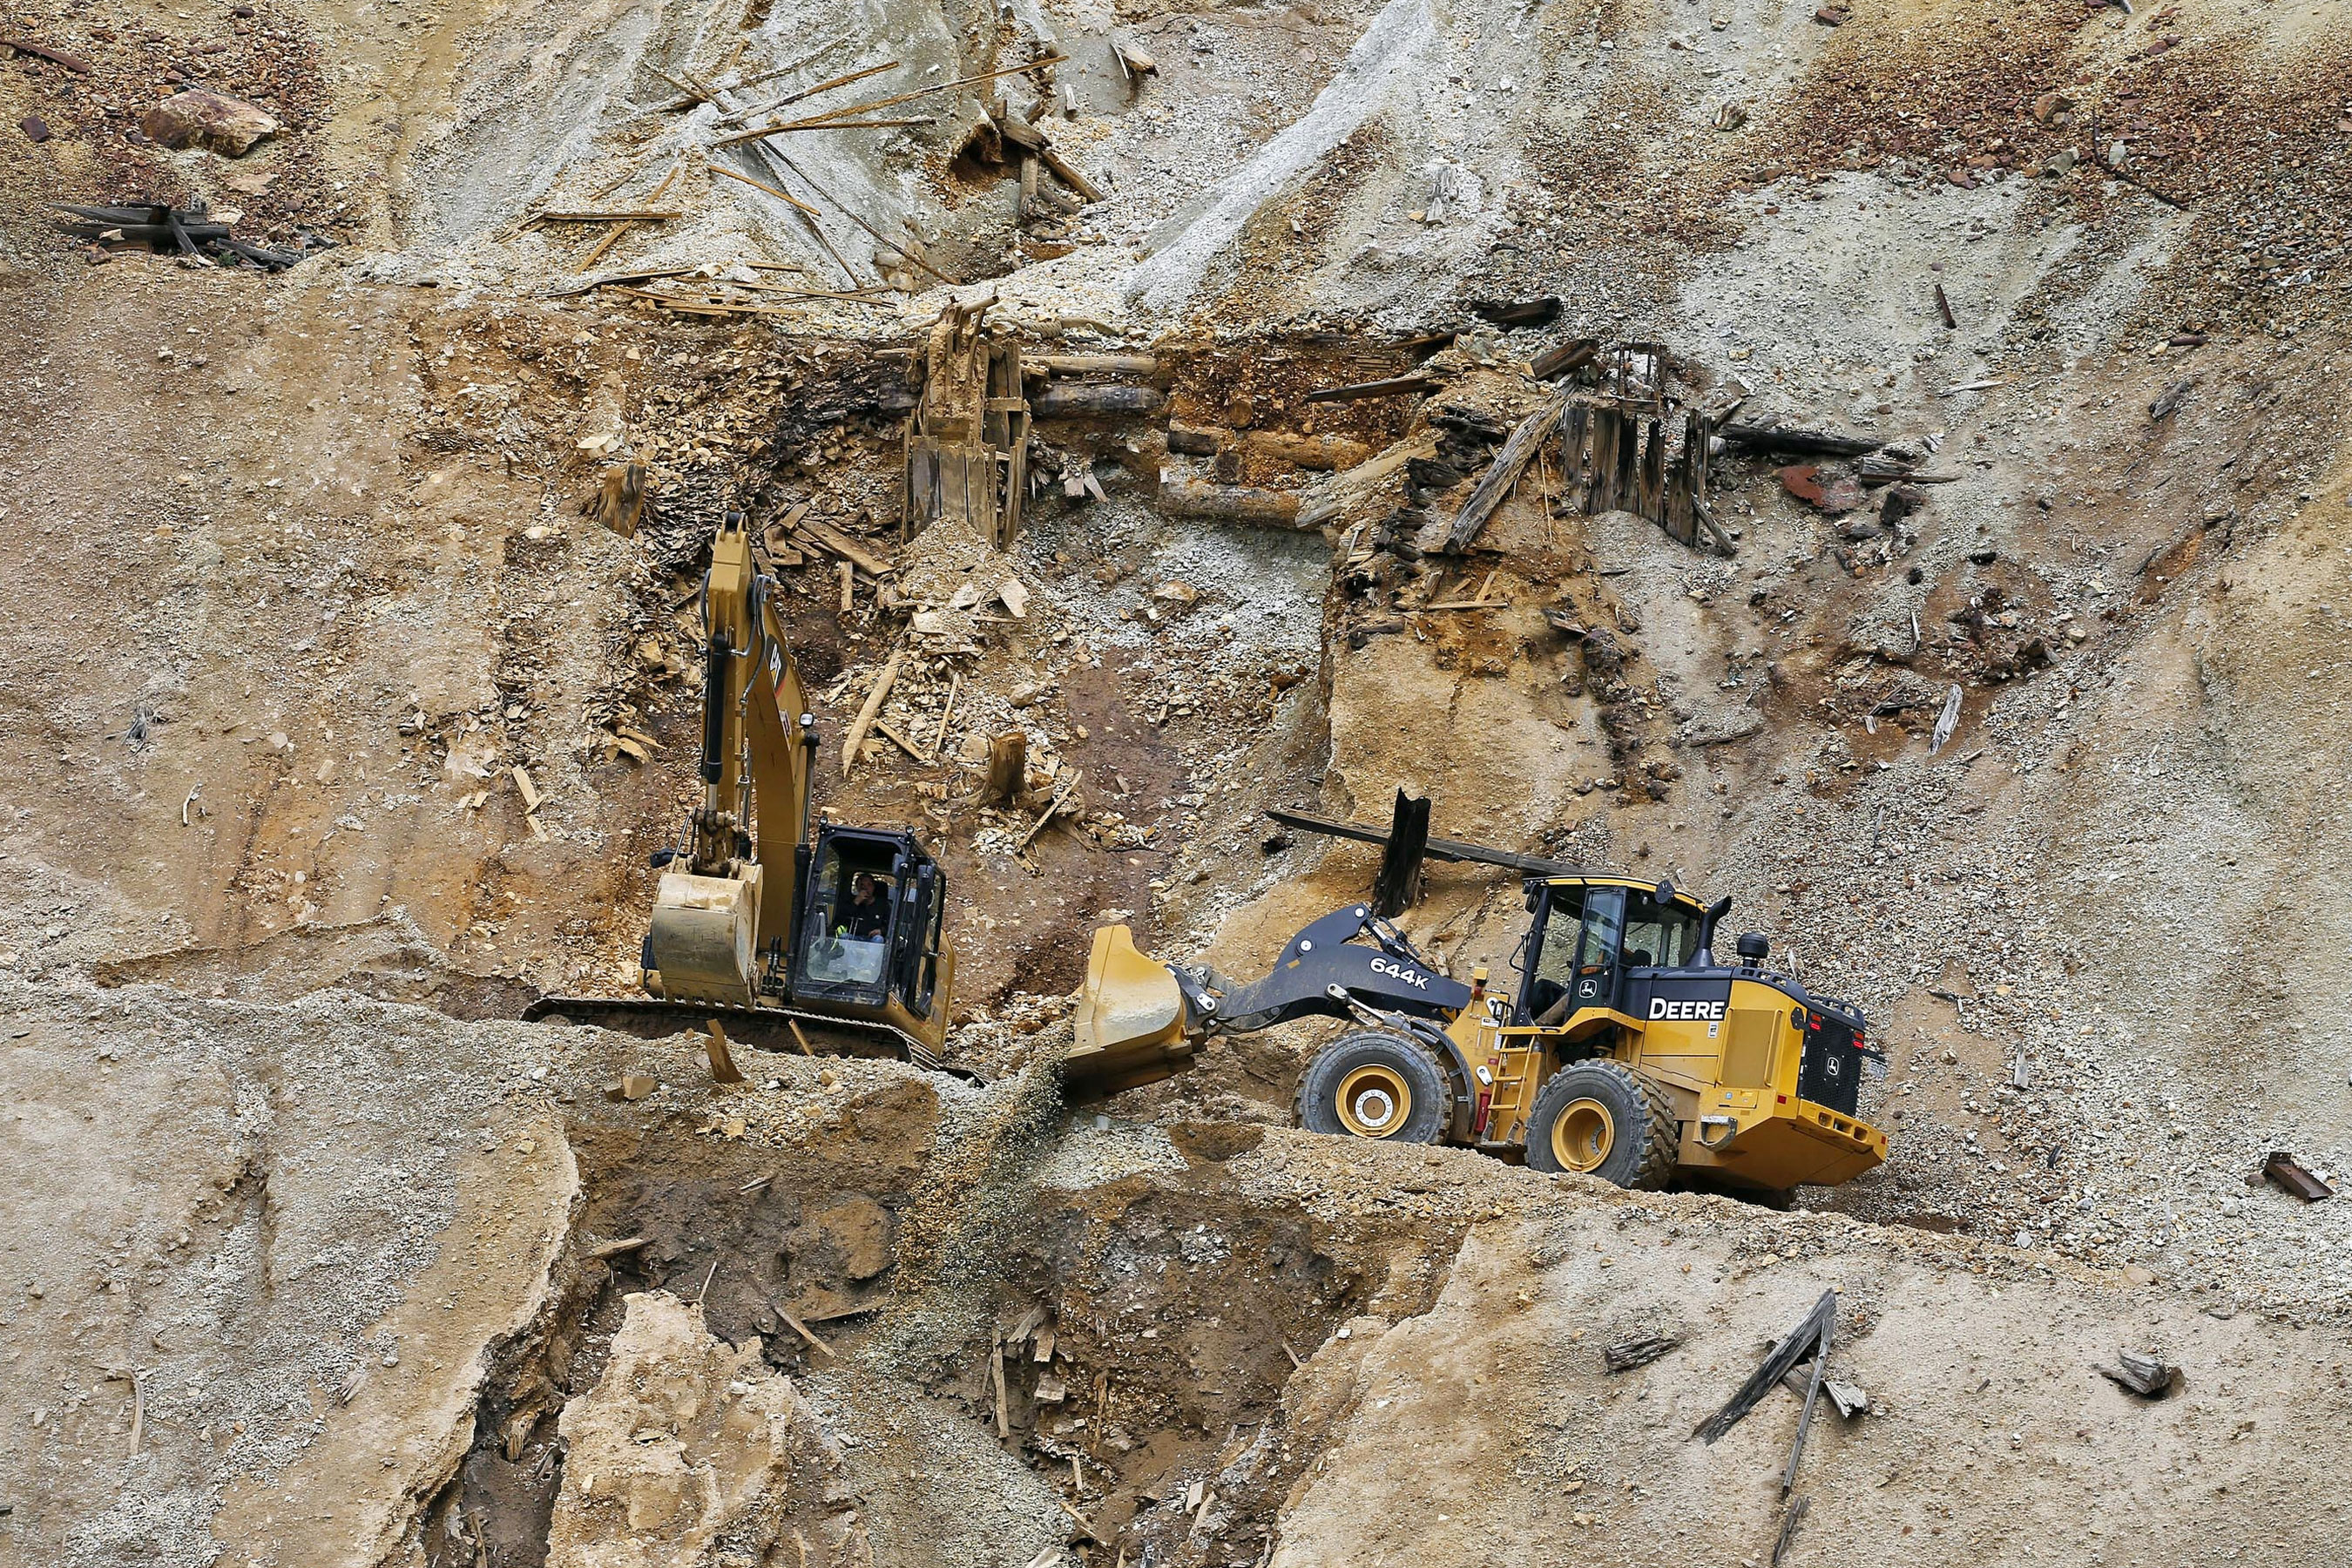 <p>Environmental Protection Agency contractors repair damage at the Gold King mine outside Silverton, Colo., August 2015. The EPA had no rules for working around old mines when the agency inadvertently triggered the massive spill from the Colorado mine that polluted rivers in three states, government investigators said Monday, June 12, 2017.</p>